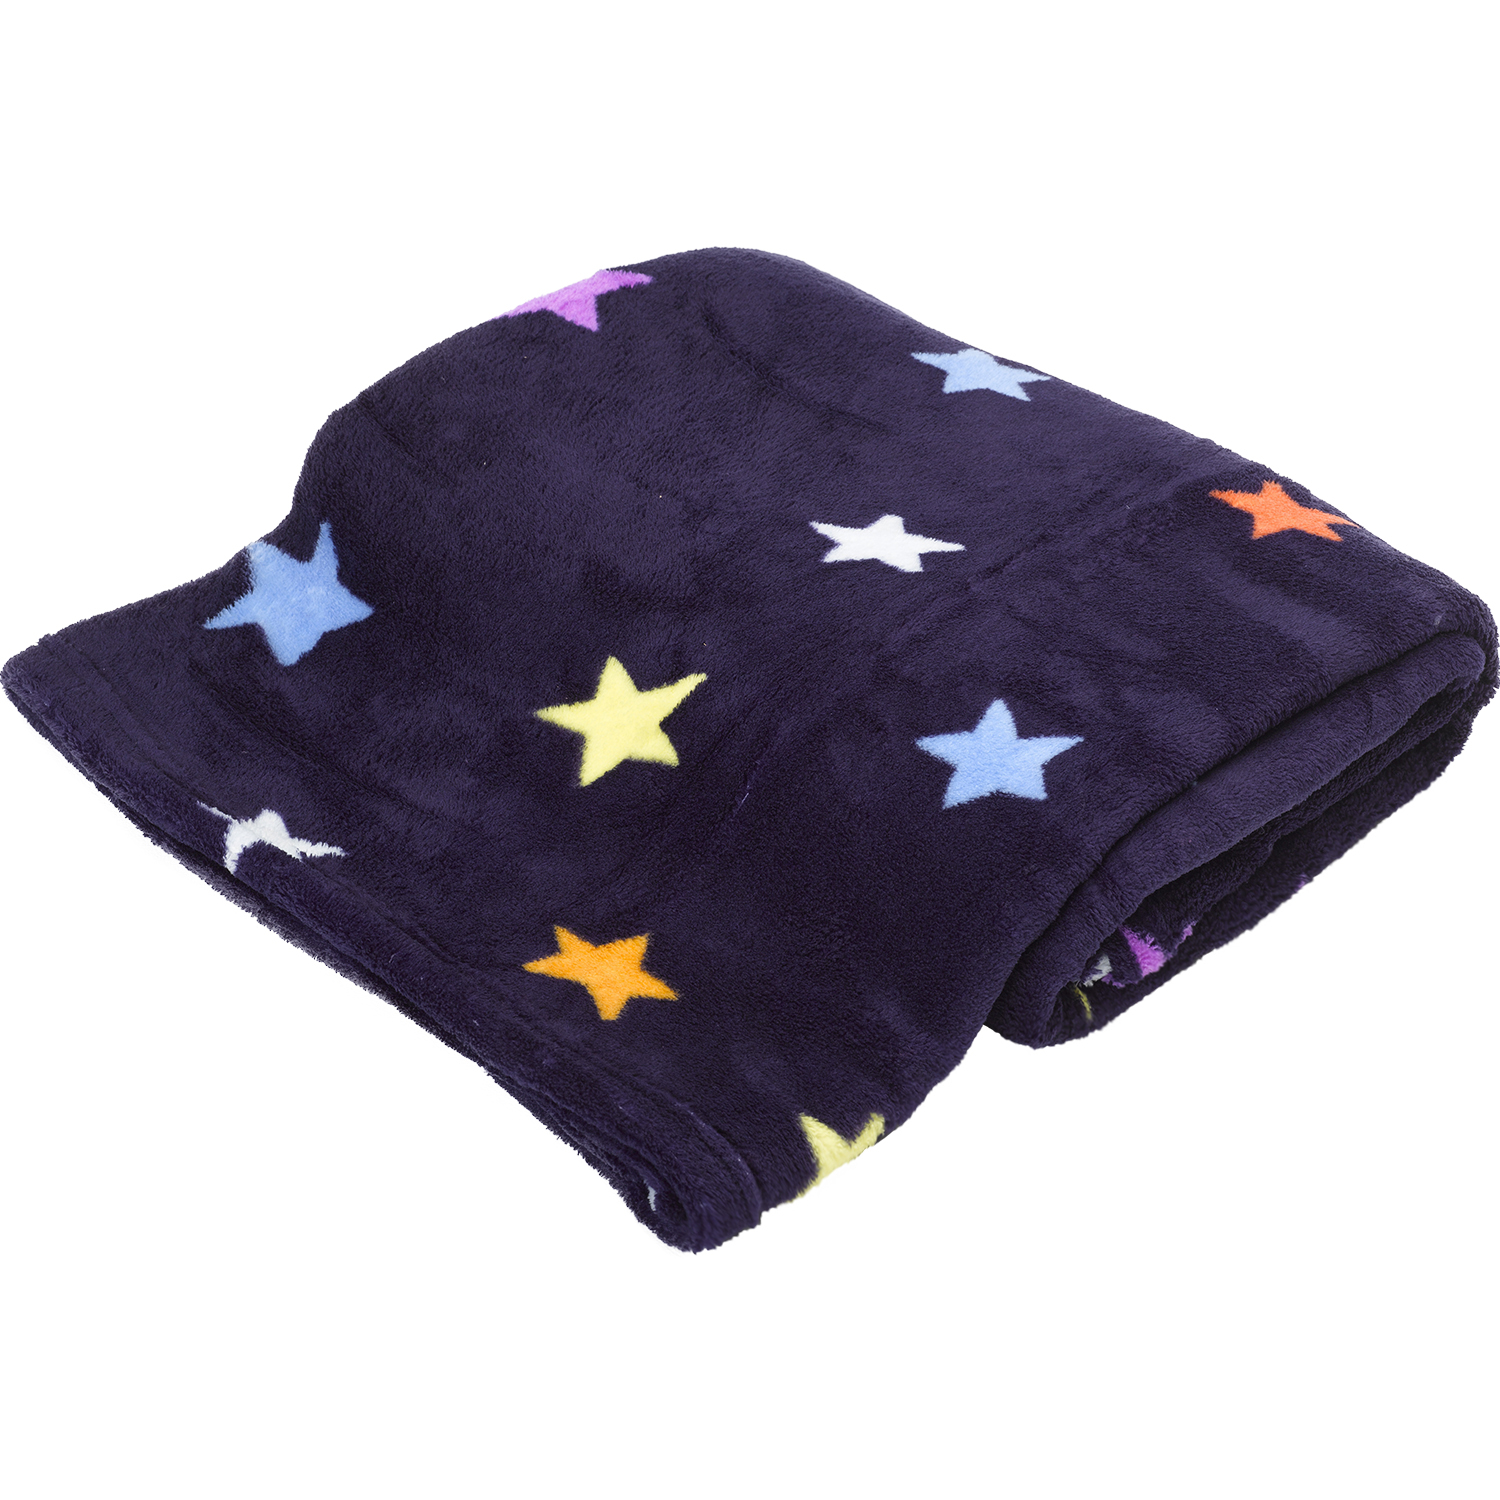 Boys outer space soft fleece throw catherine lansfield for Outer space fleece